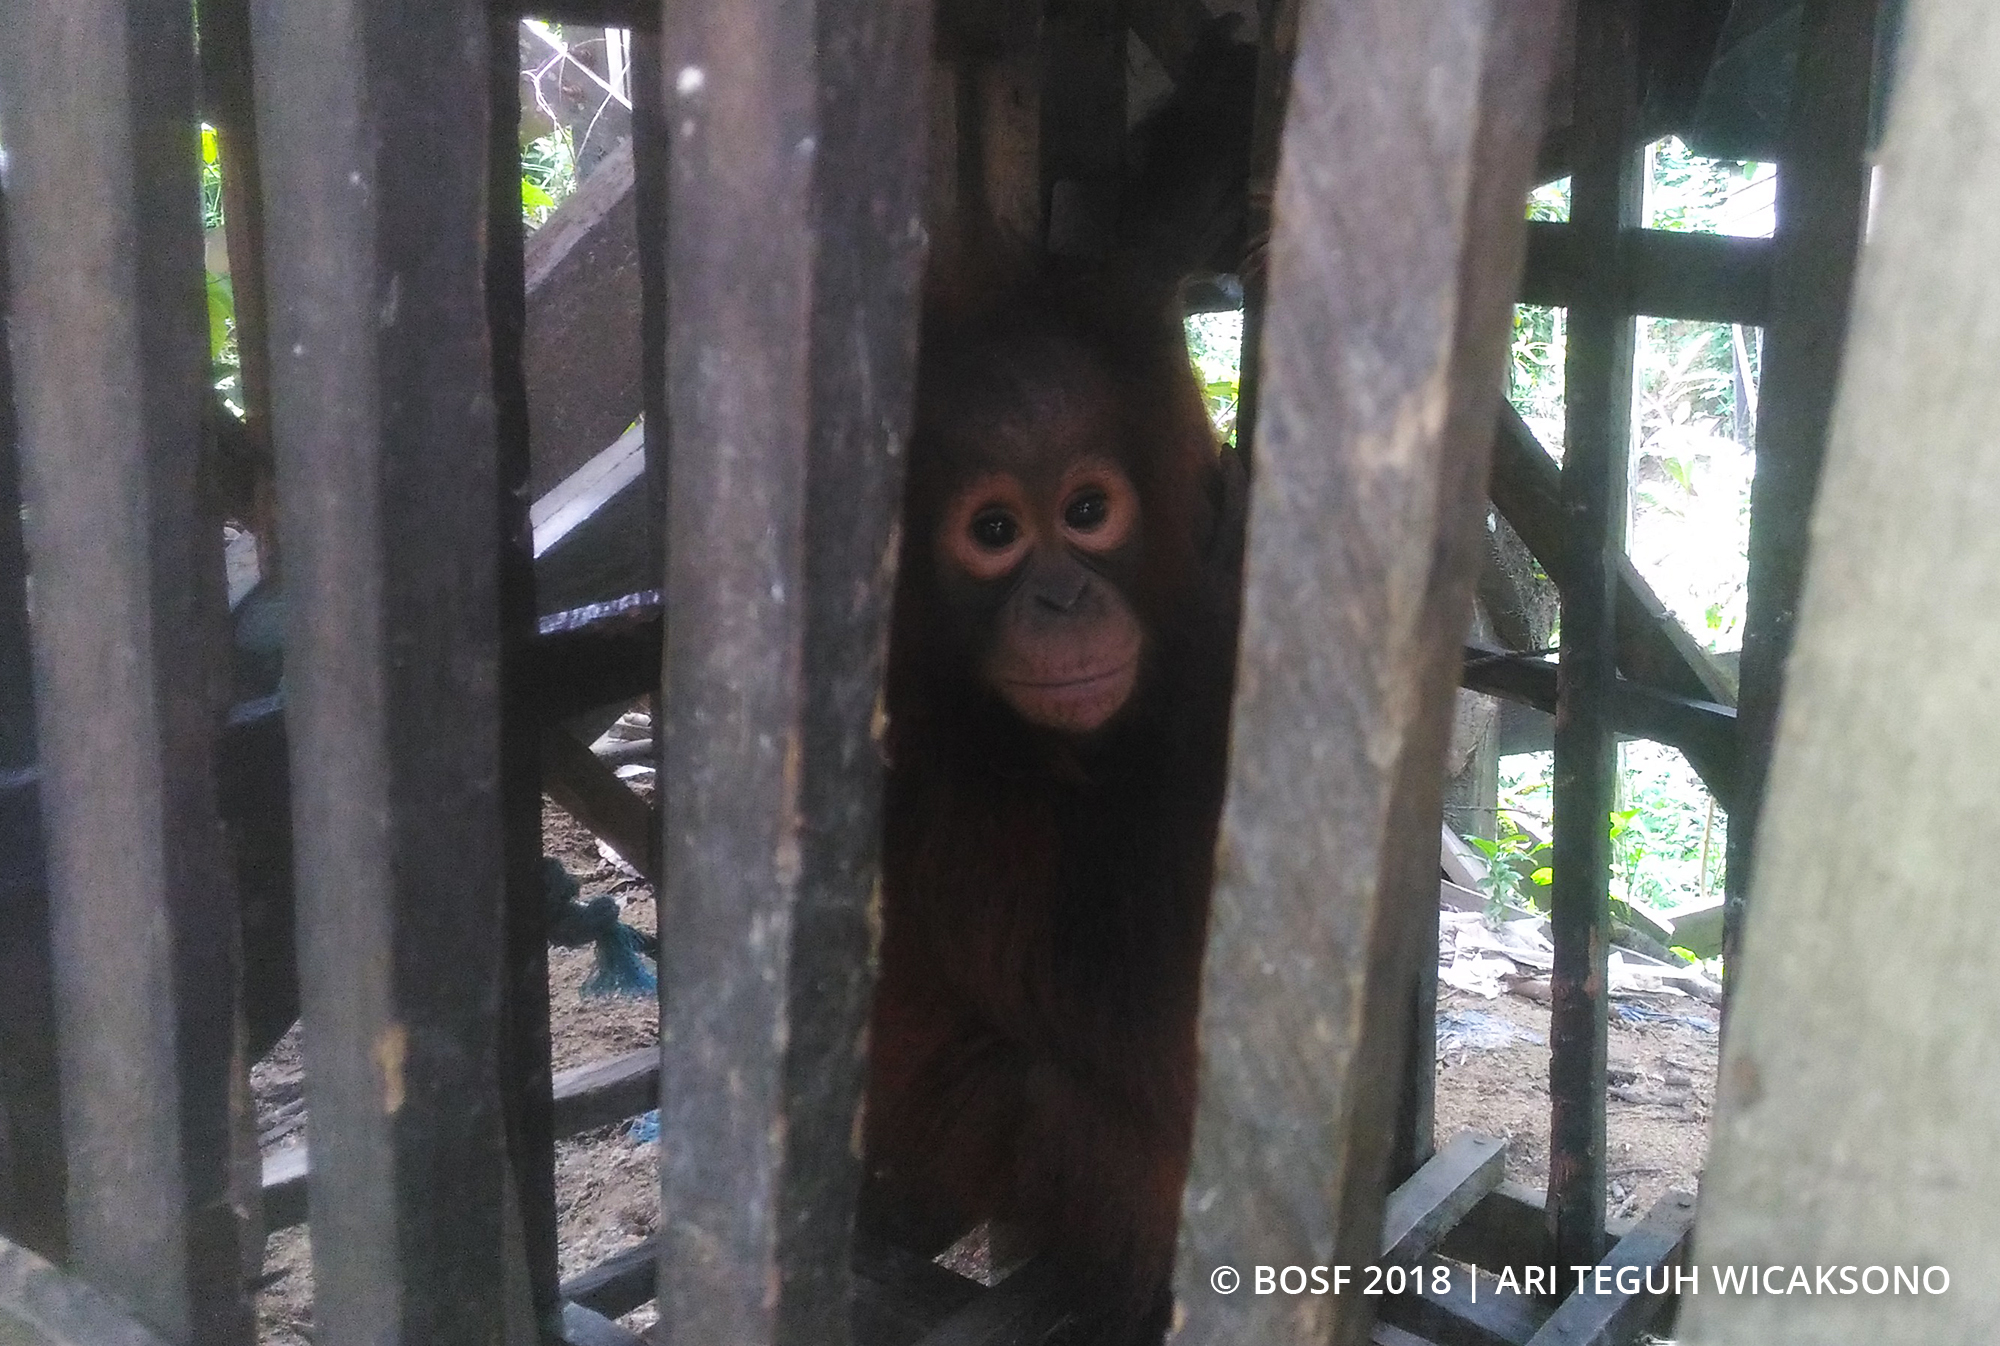 Borneo's orangutan population suffering